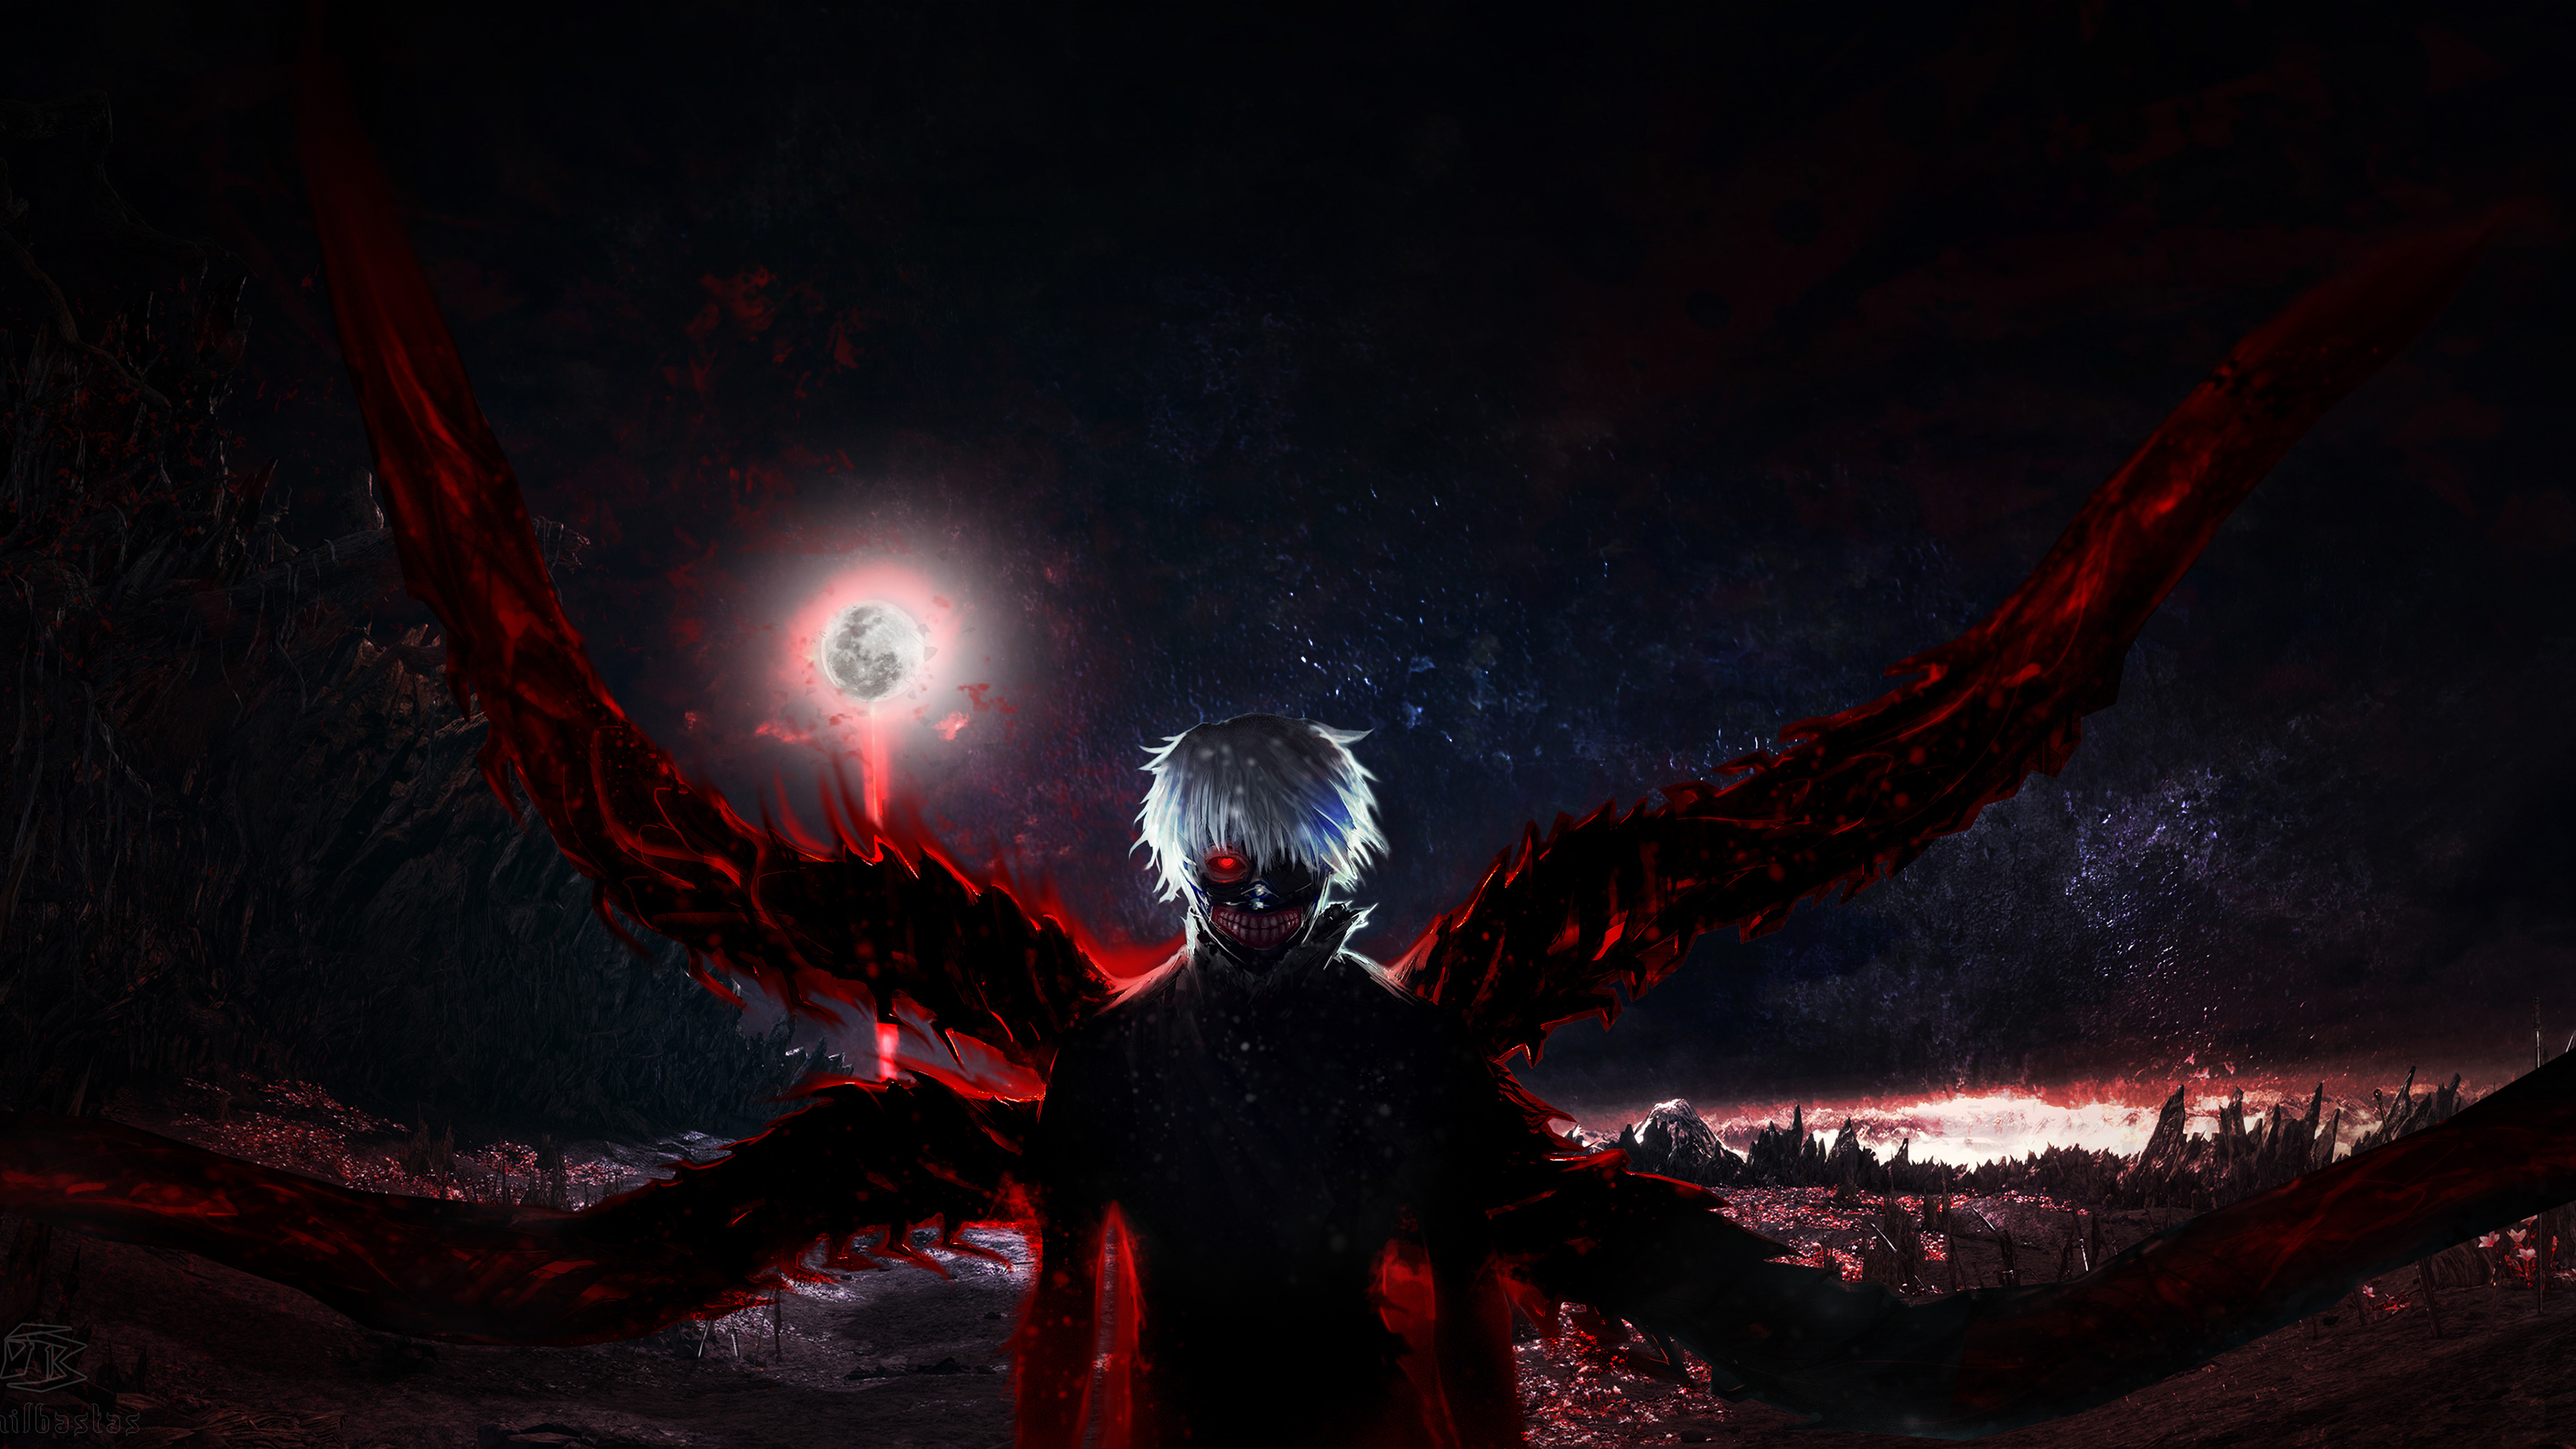 1920x1080 Tokyo Ghoul 4k Laptop Full Hd 1080p Hd 4k Wallpapers Images Backgrounds Photos And Pictures